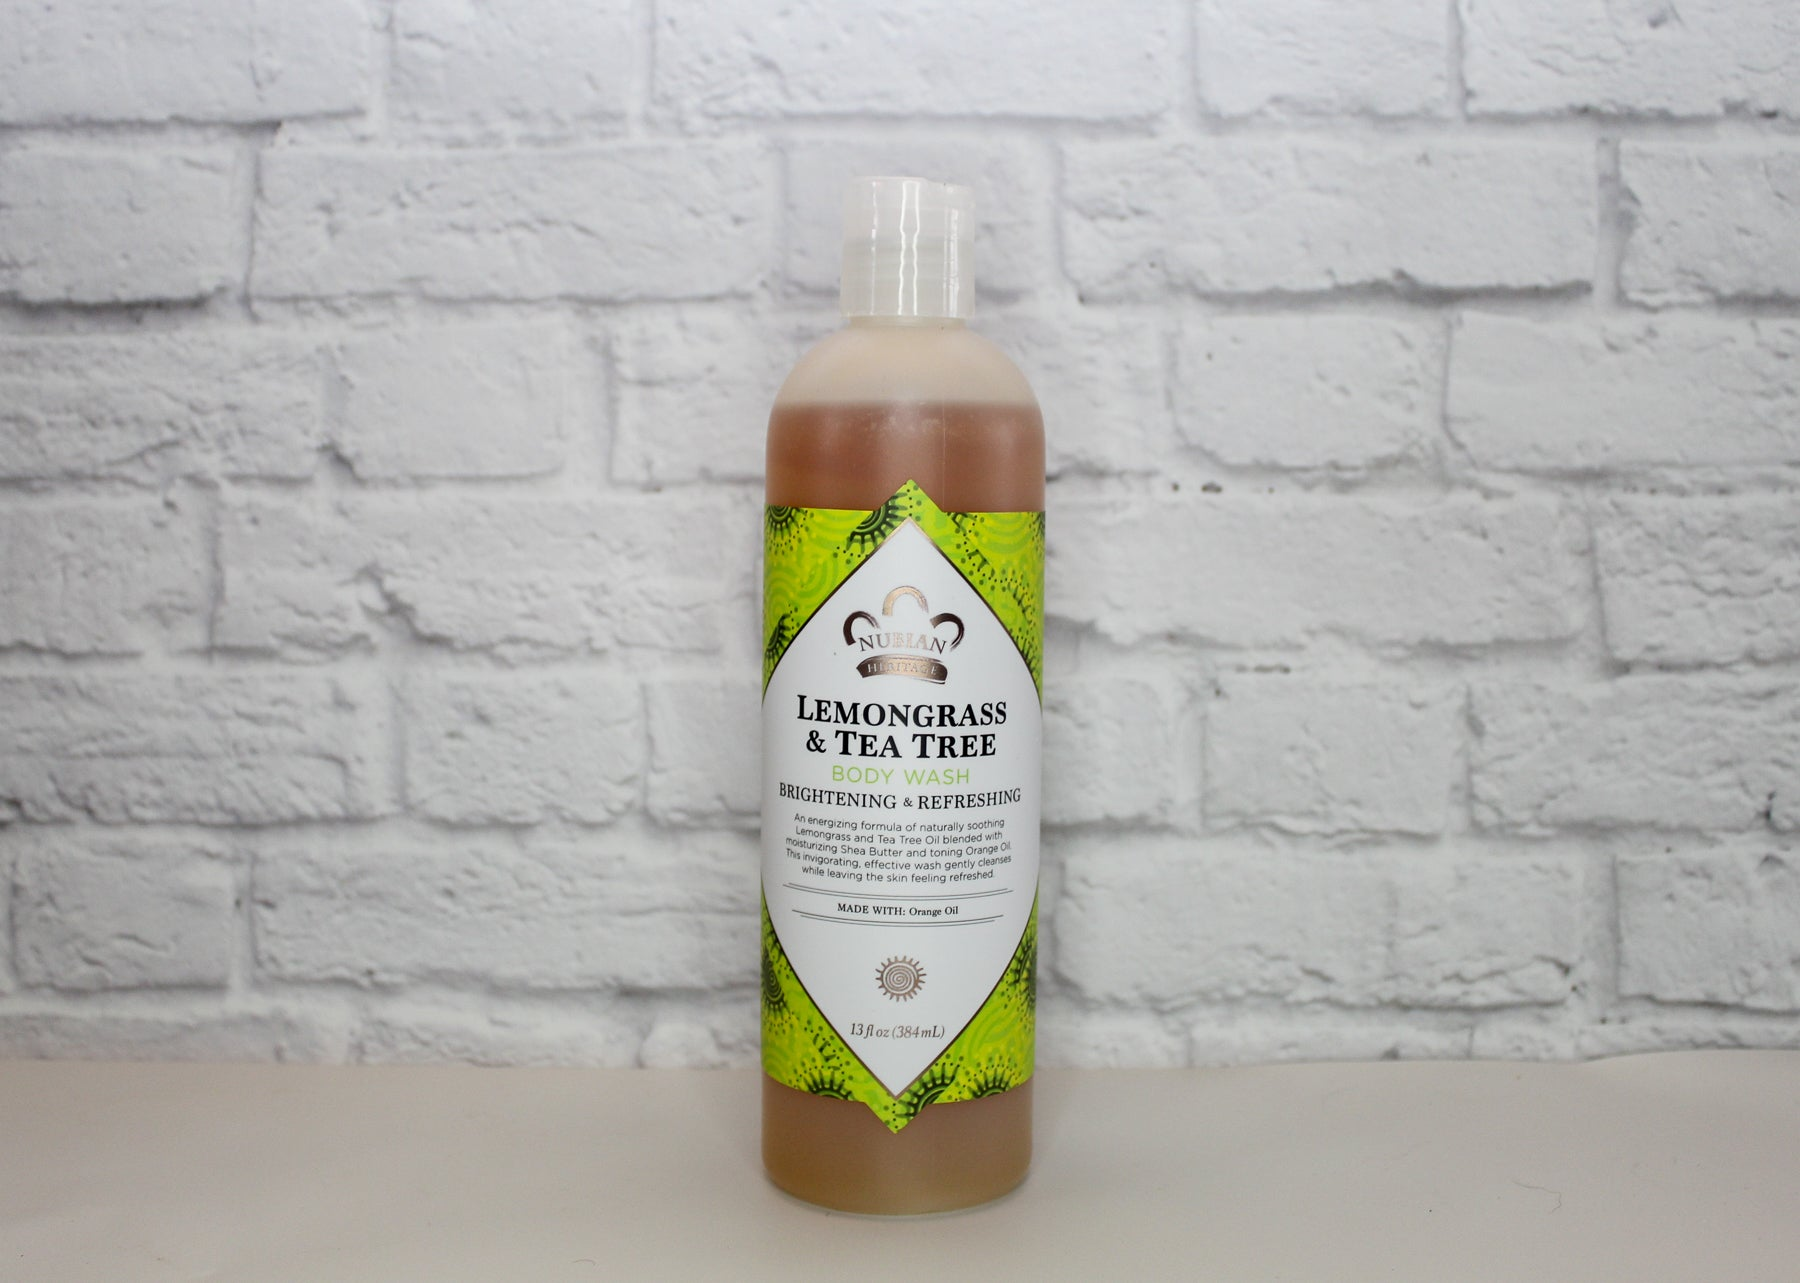 Lemongrass & Tea Tree Body Wash